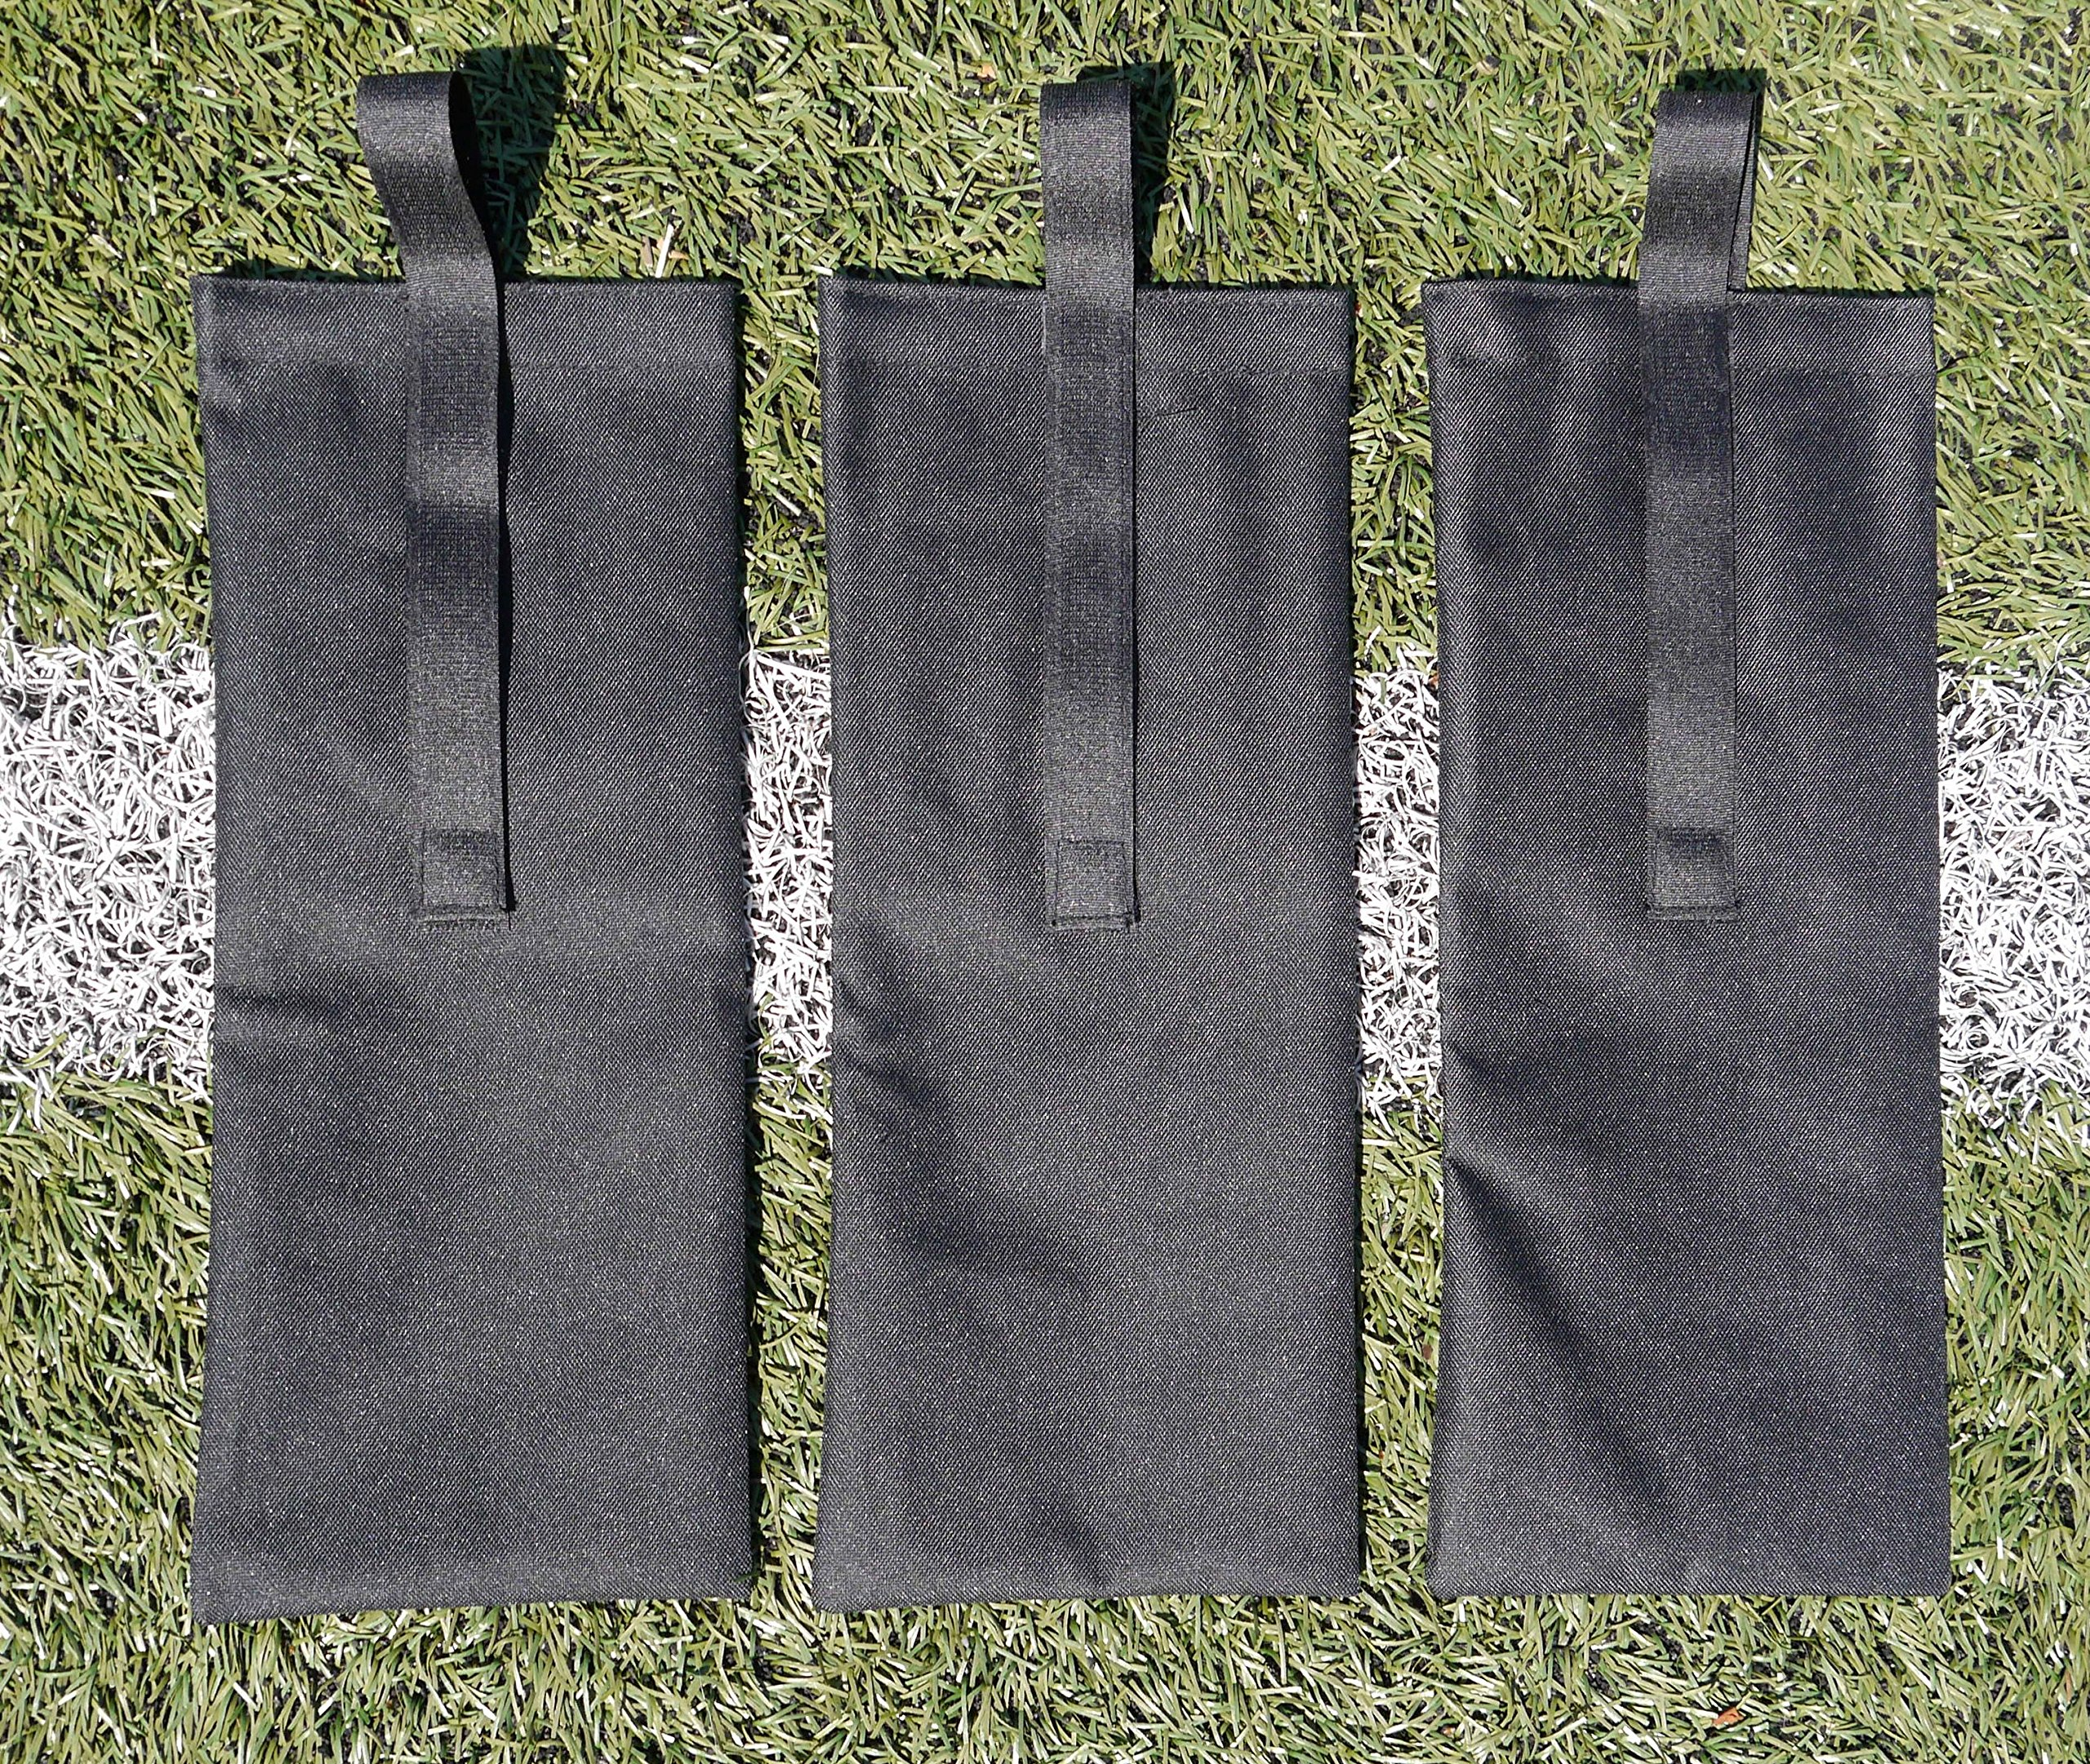 Spruce Athletic Sandbags (Set of 3) for pop up goals and other sports equipment